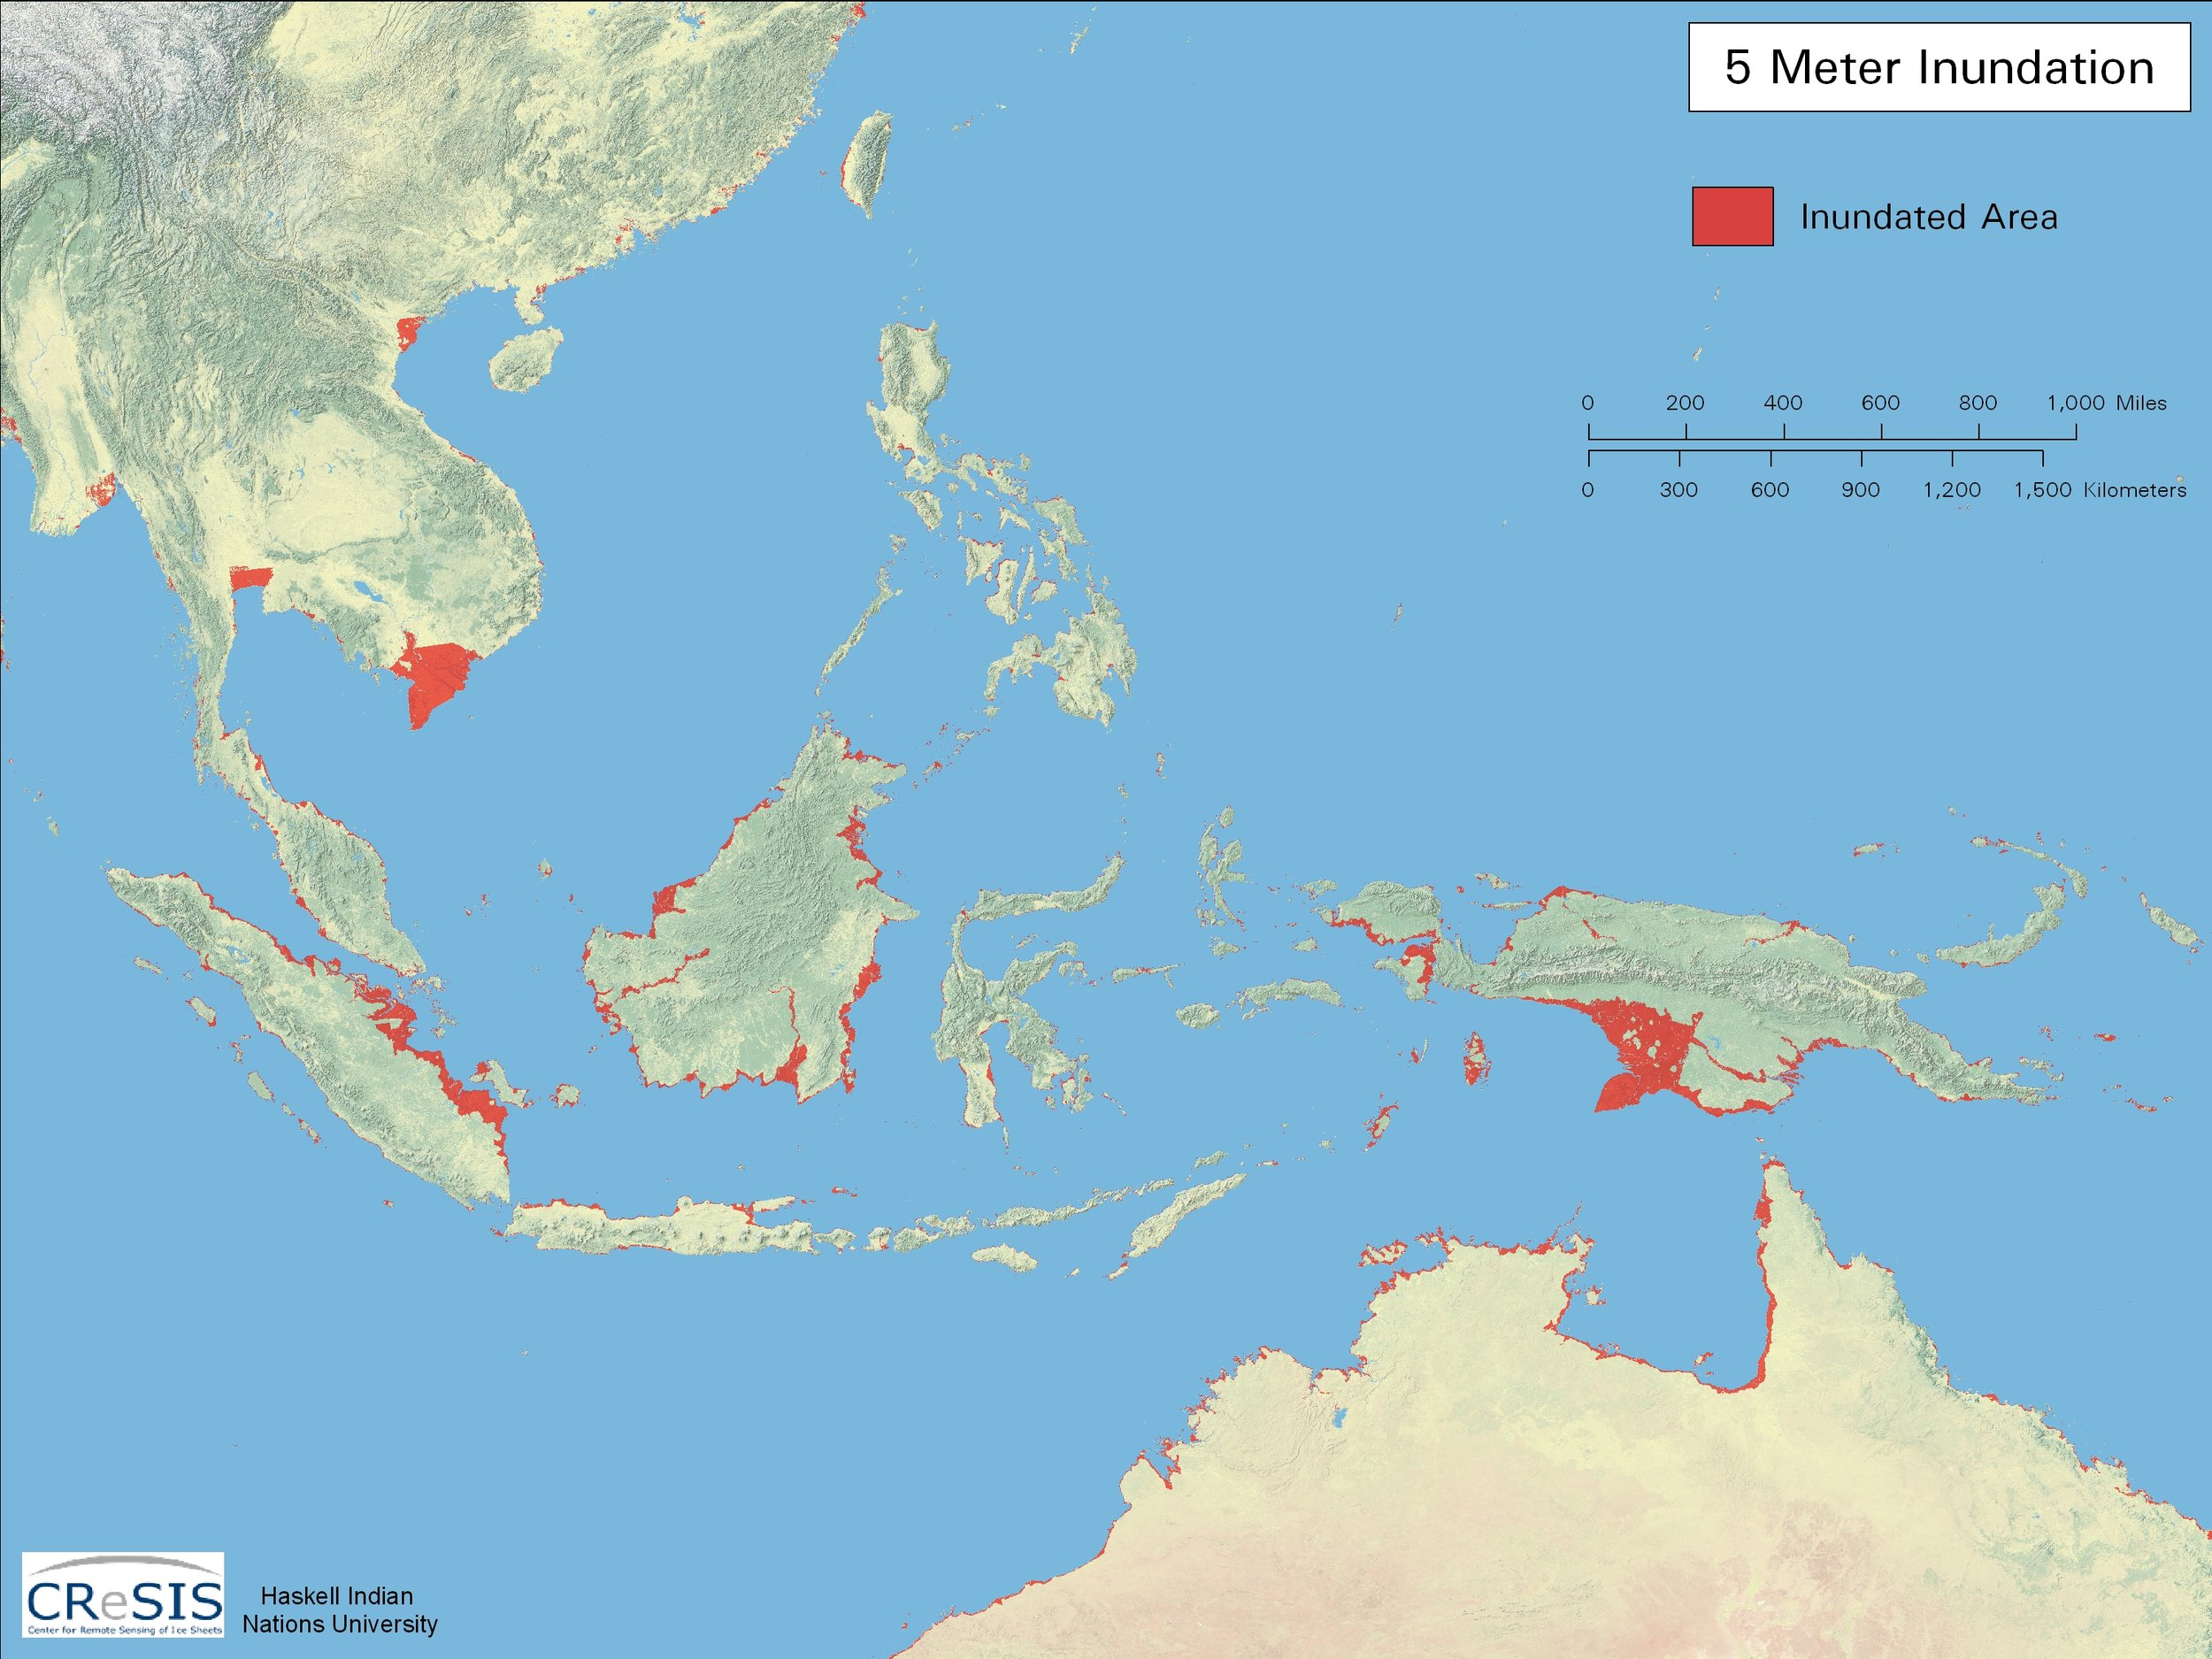 Southeast Asia: 5 Meter Inundation